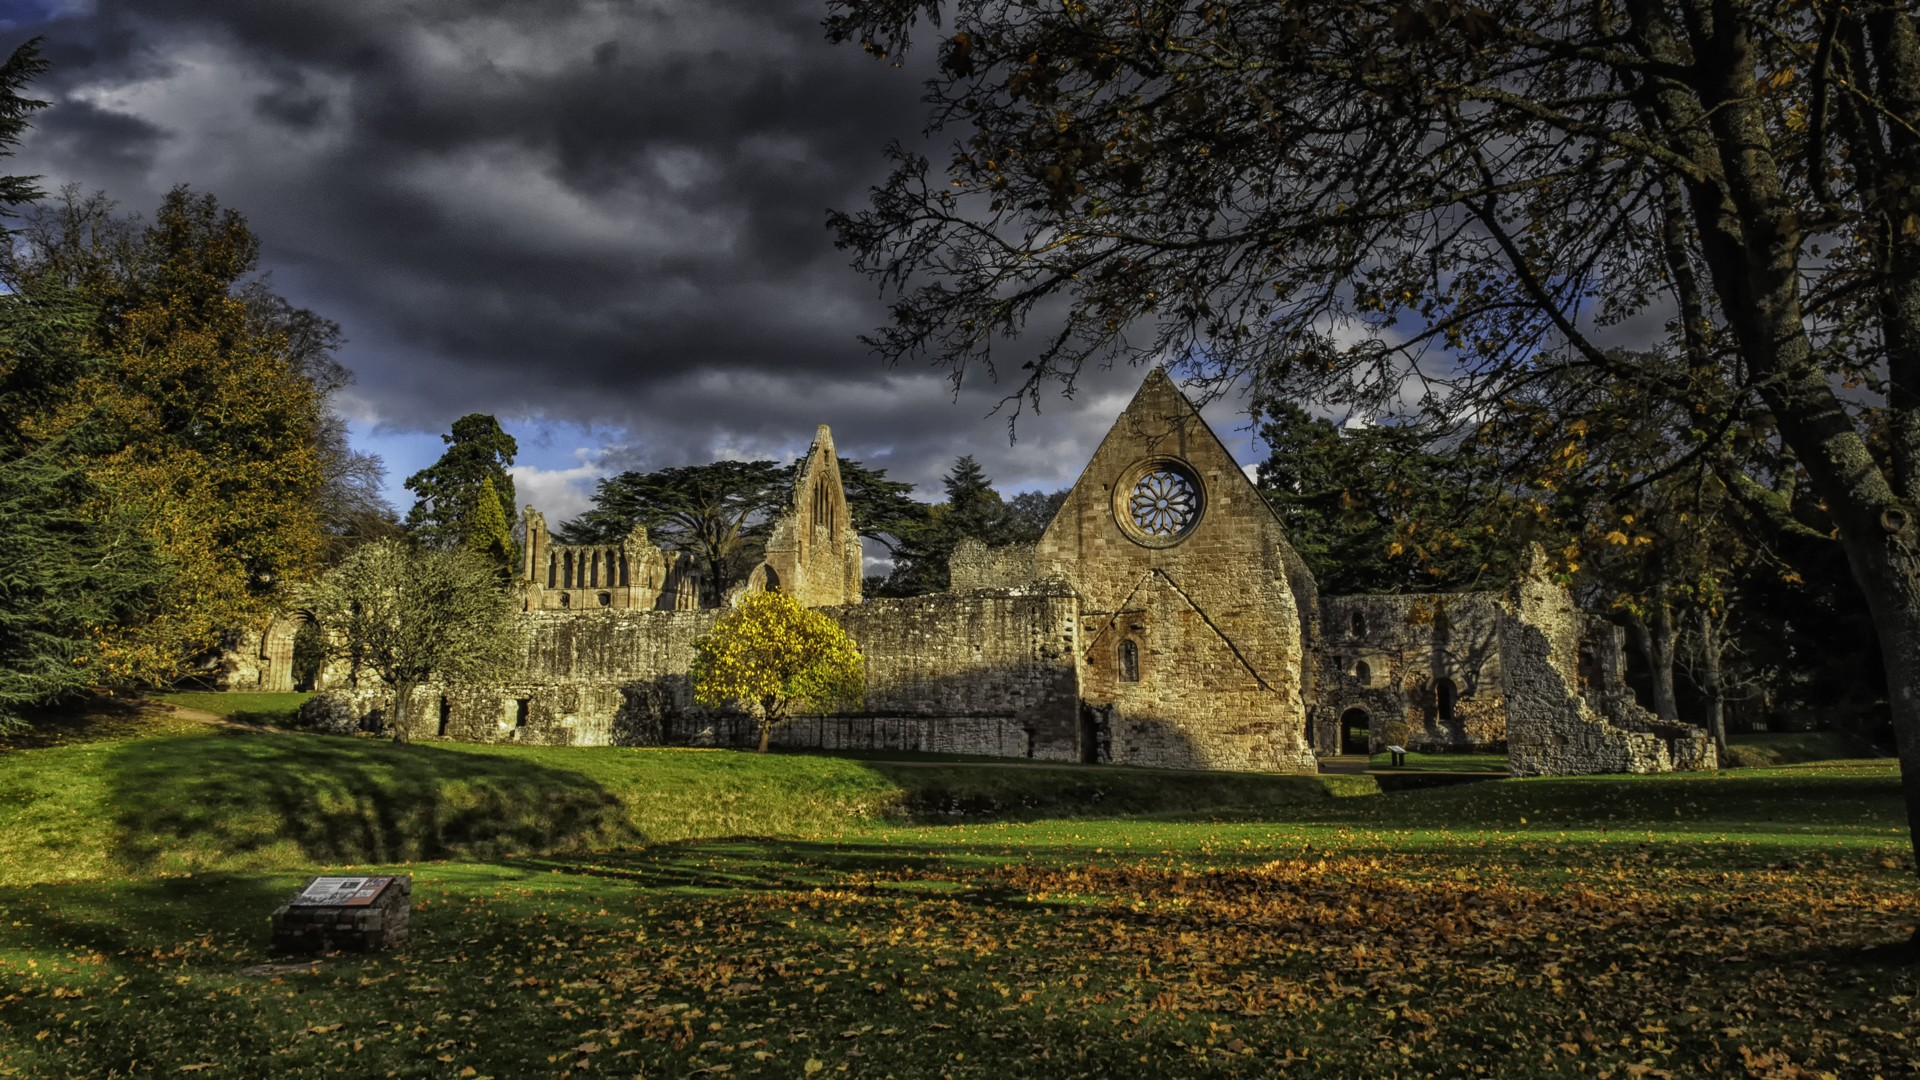 General 1920x1080 architecture house town old old building Scotland UK trees clouds field grass stone house church ruins HDR leaves fall shadow history